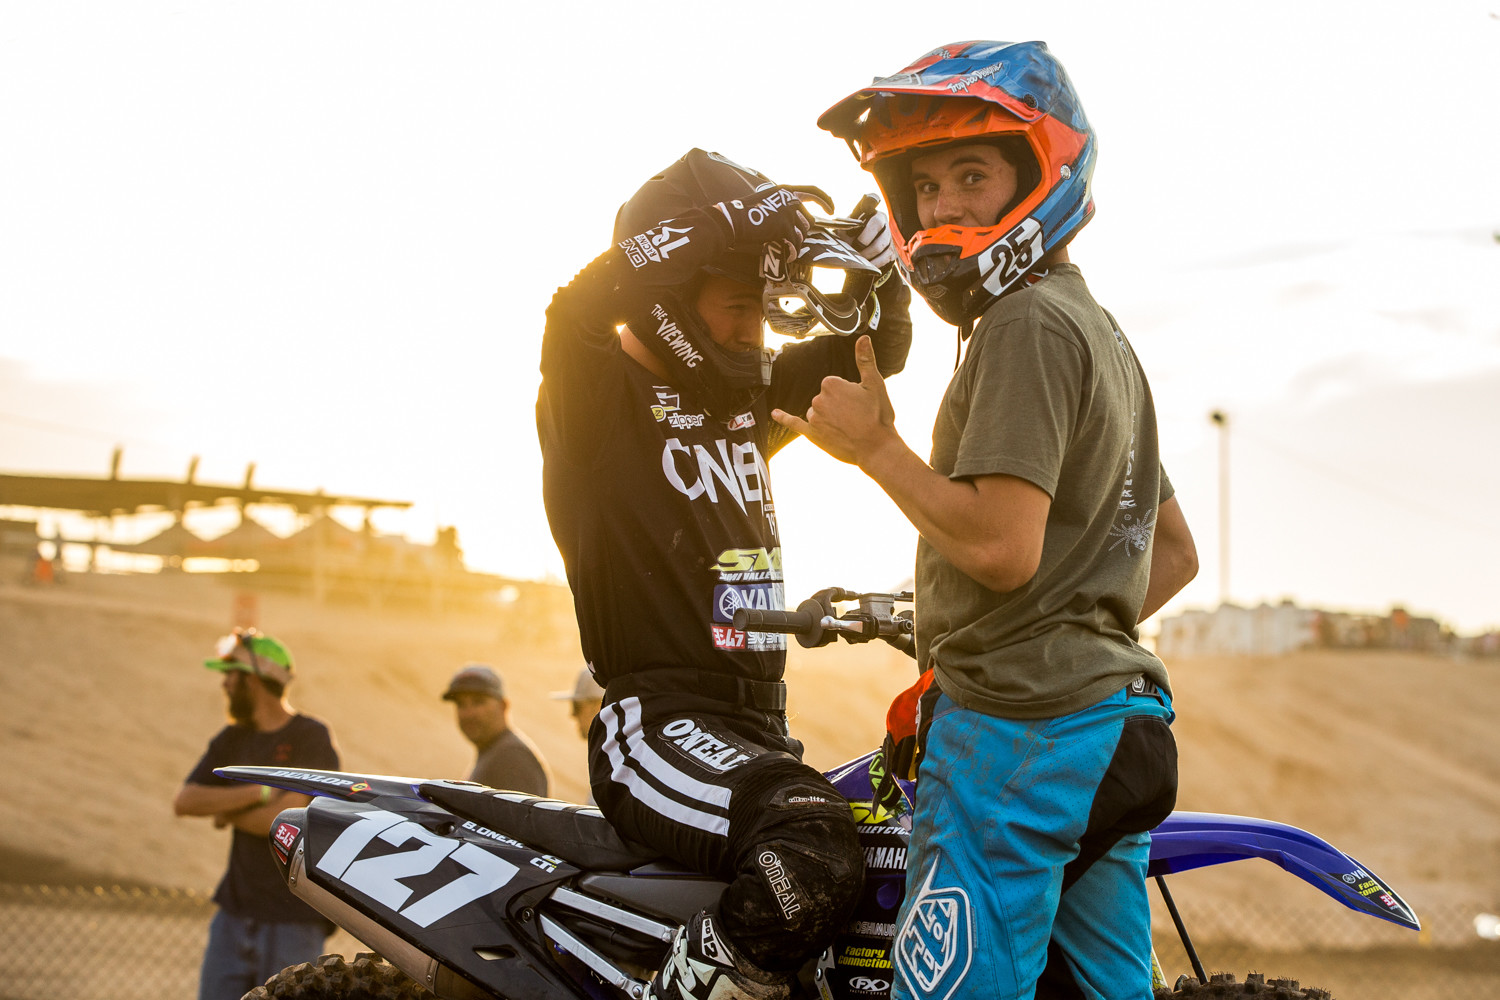 Braden O'Neal and Max Lee - Gallery: 2017 AMA Arizona Open Amateur National - Friday - Motocross Pictures - Vital MX